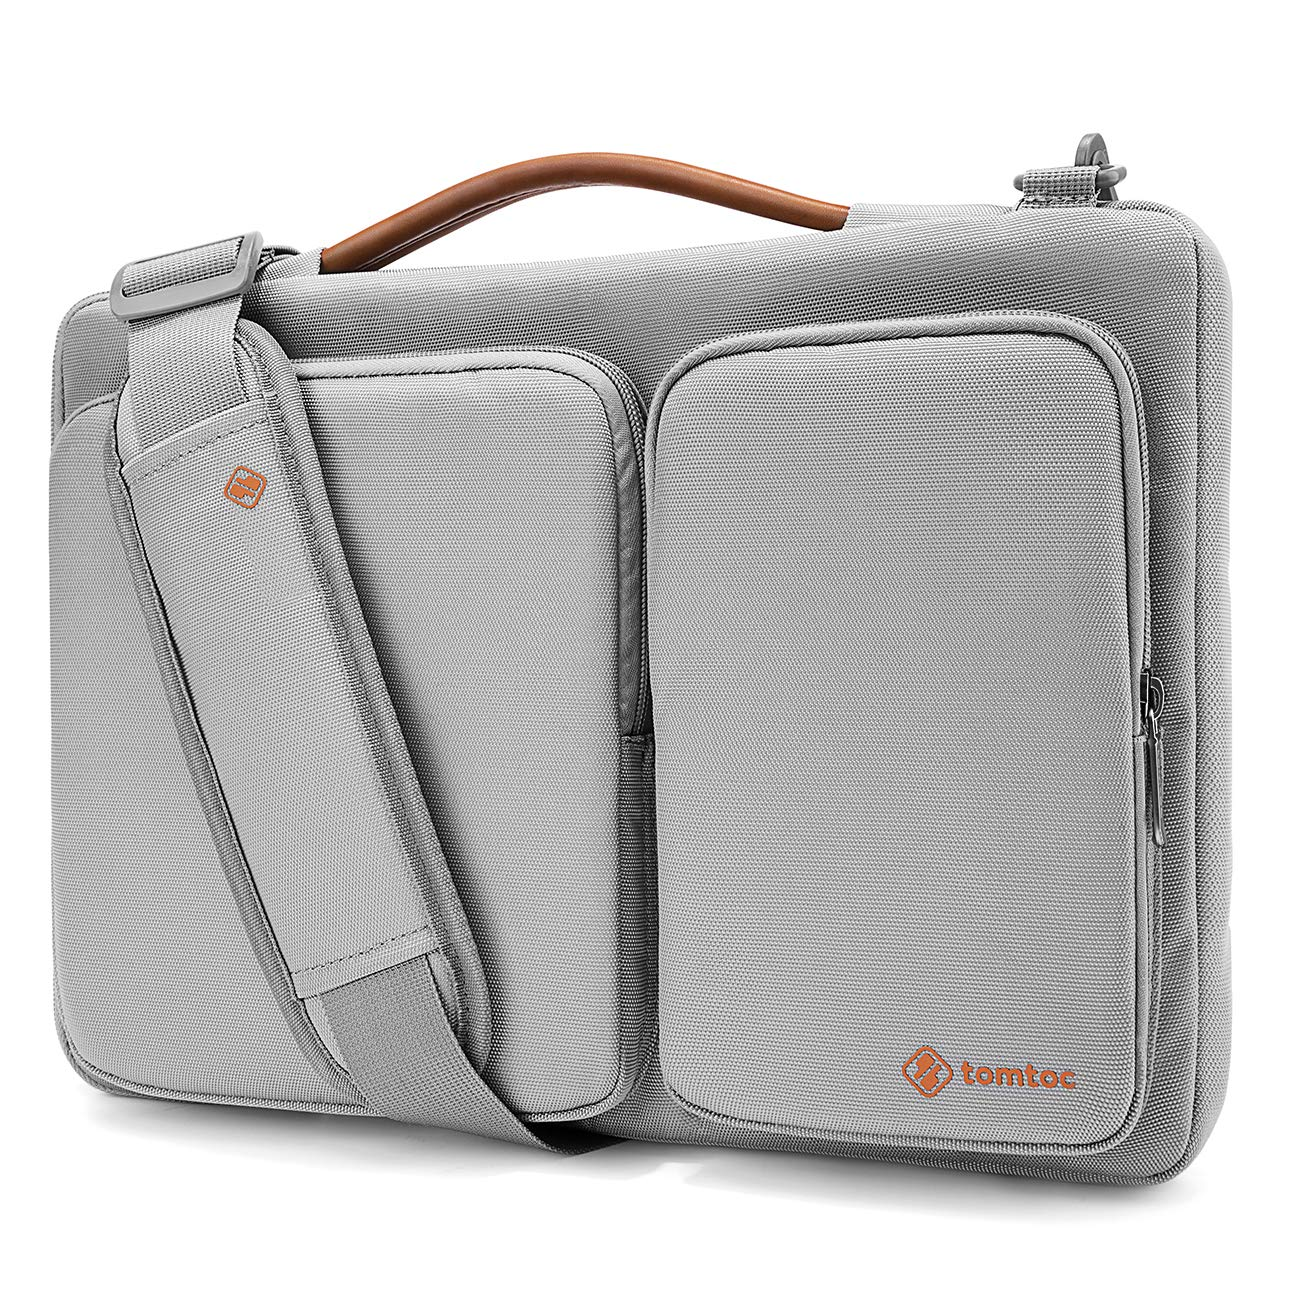 tomtoc Original 14 inch Laptop Shoulder Bag CornerArmor Patent, 360° Protective Laptop Sleeve 14 inch Lenovo ThinkPad | Acer HP Chromebook | 15 MacBook Pro Touch Bar 2017 (A1707), Light Gray